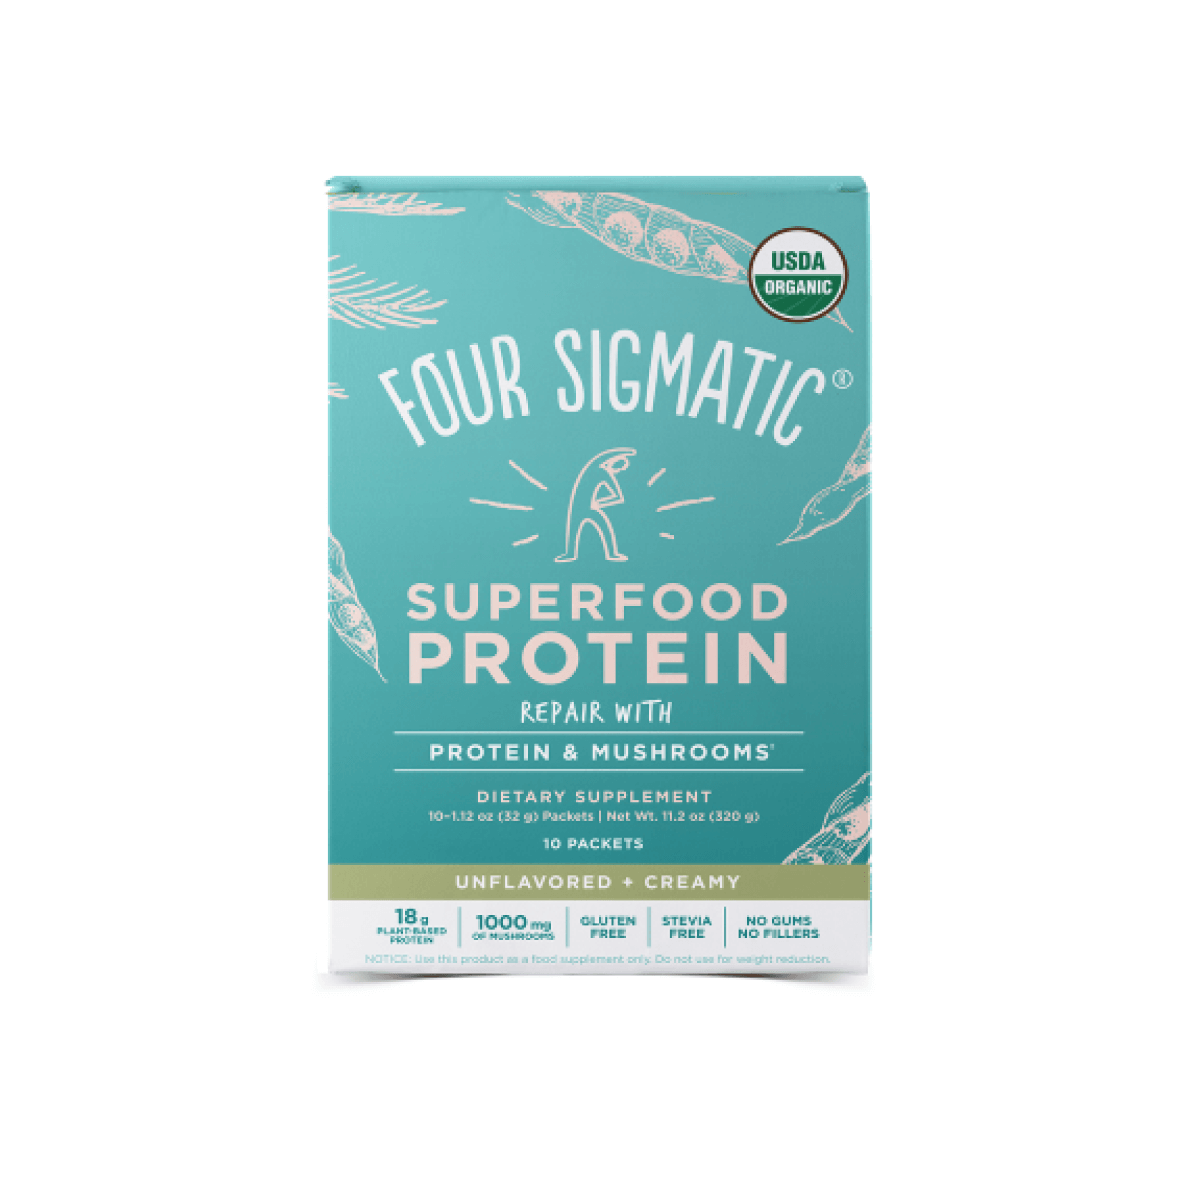 FOUR SIGMATIC SUPERFOOD PROTEIN